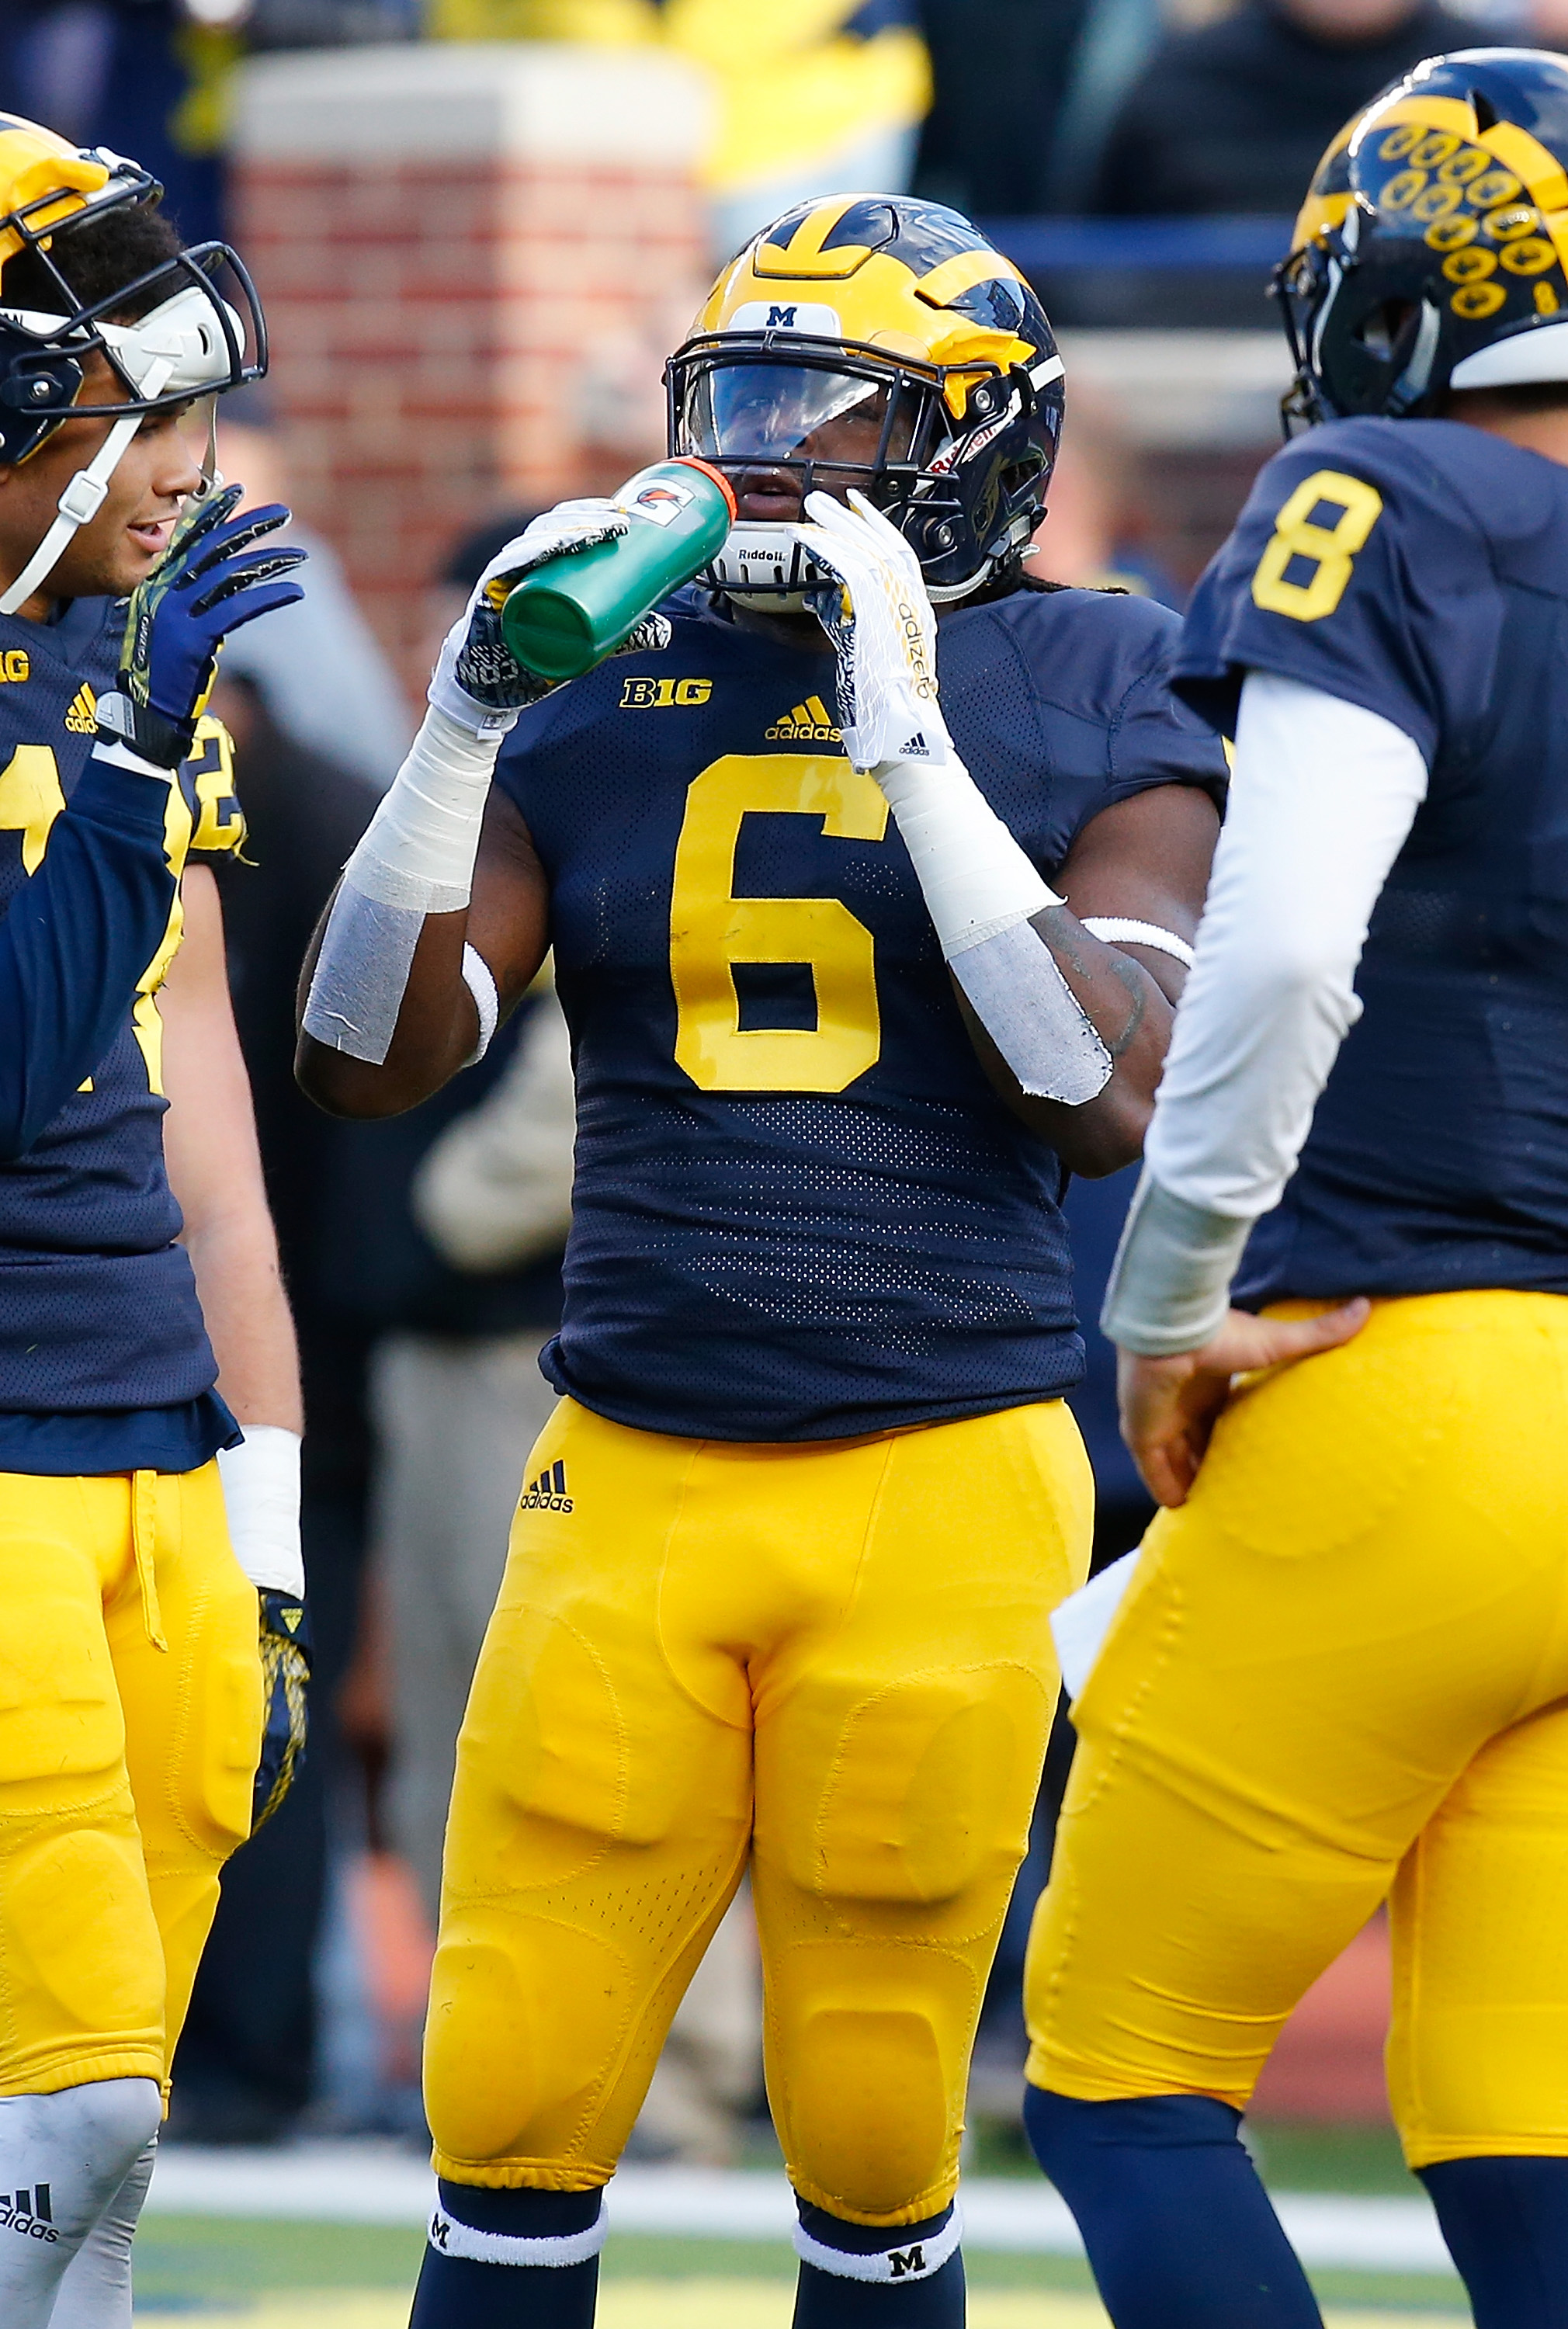 Michigan Football: What impact will Kareem Walker have ...